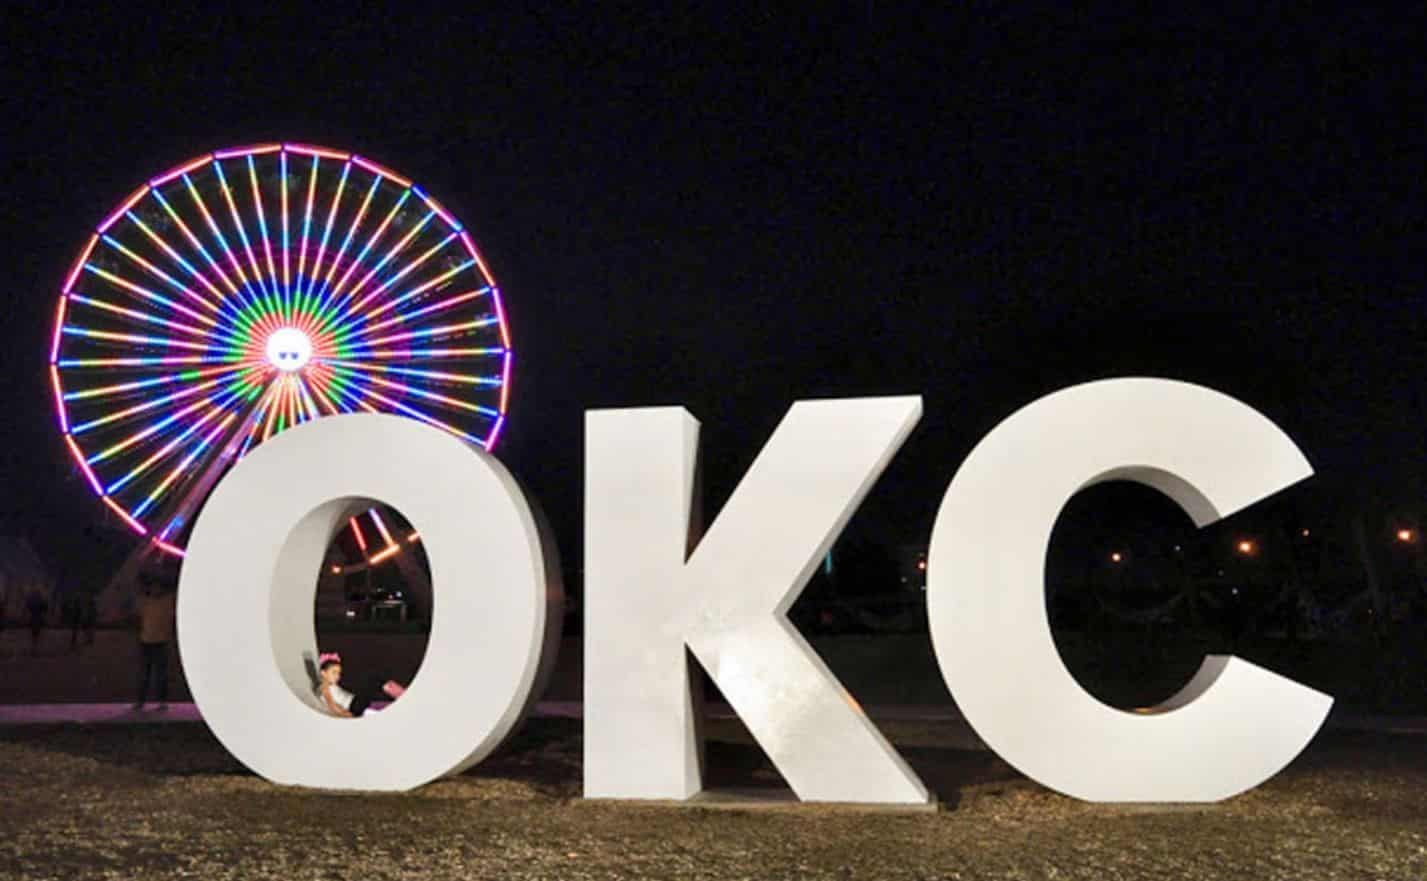 Ferris Wheel & OKC Sign